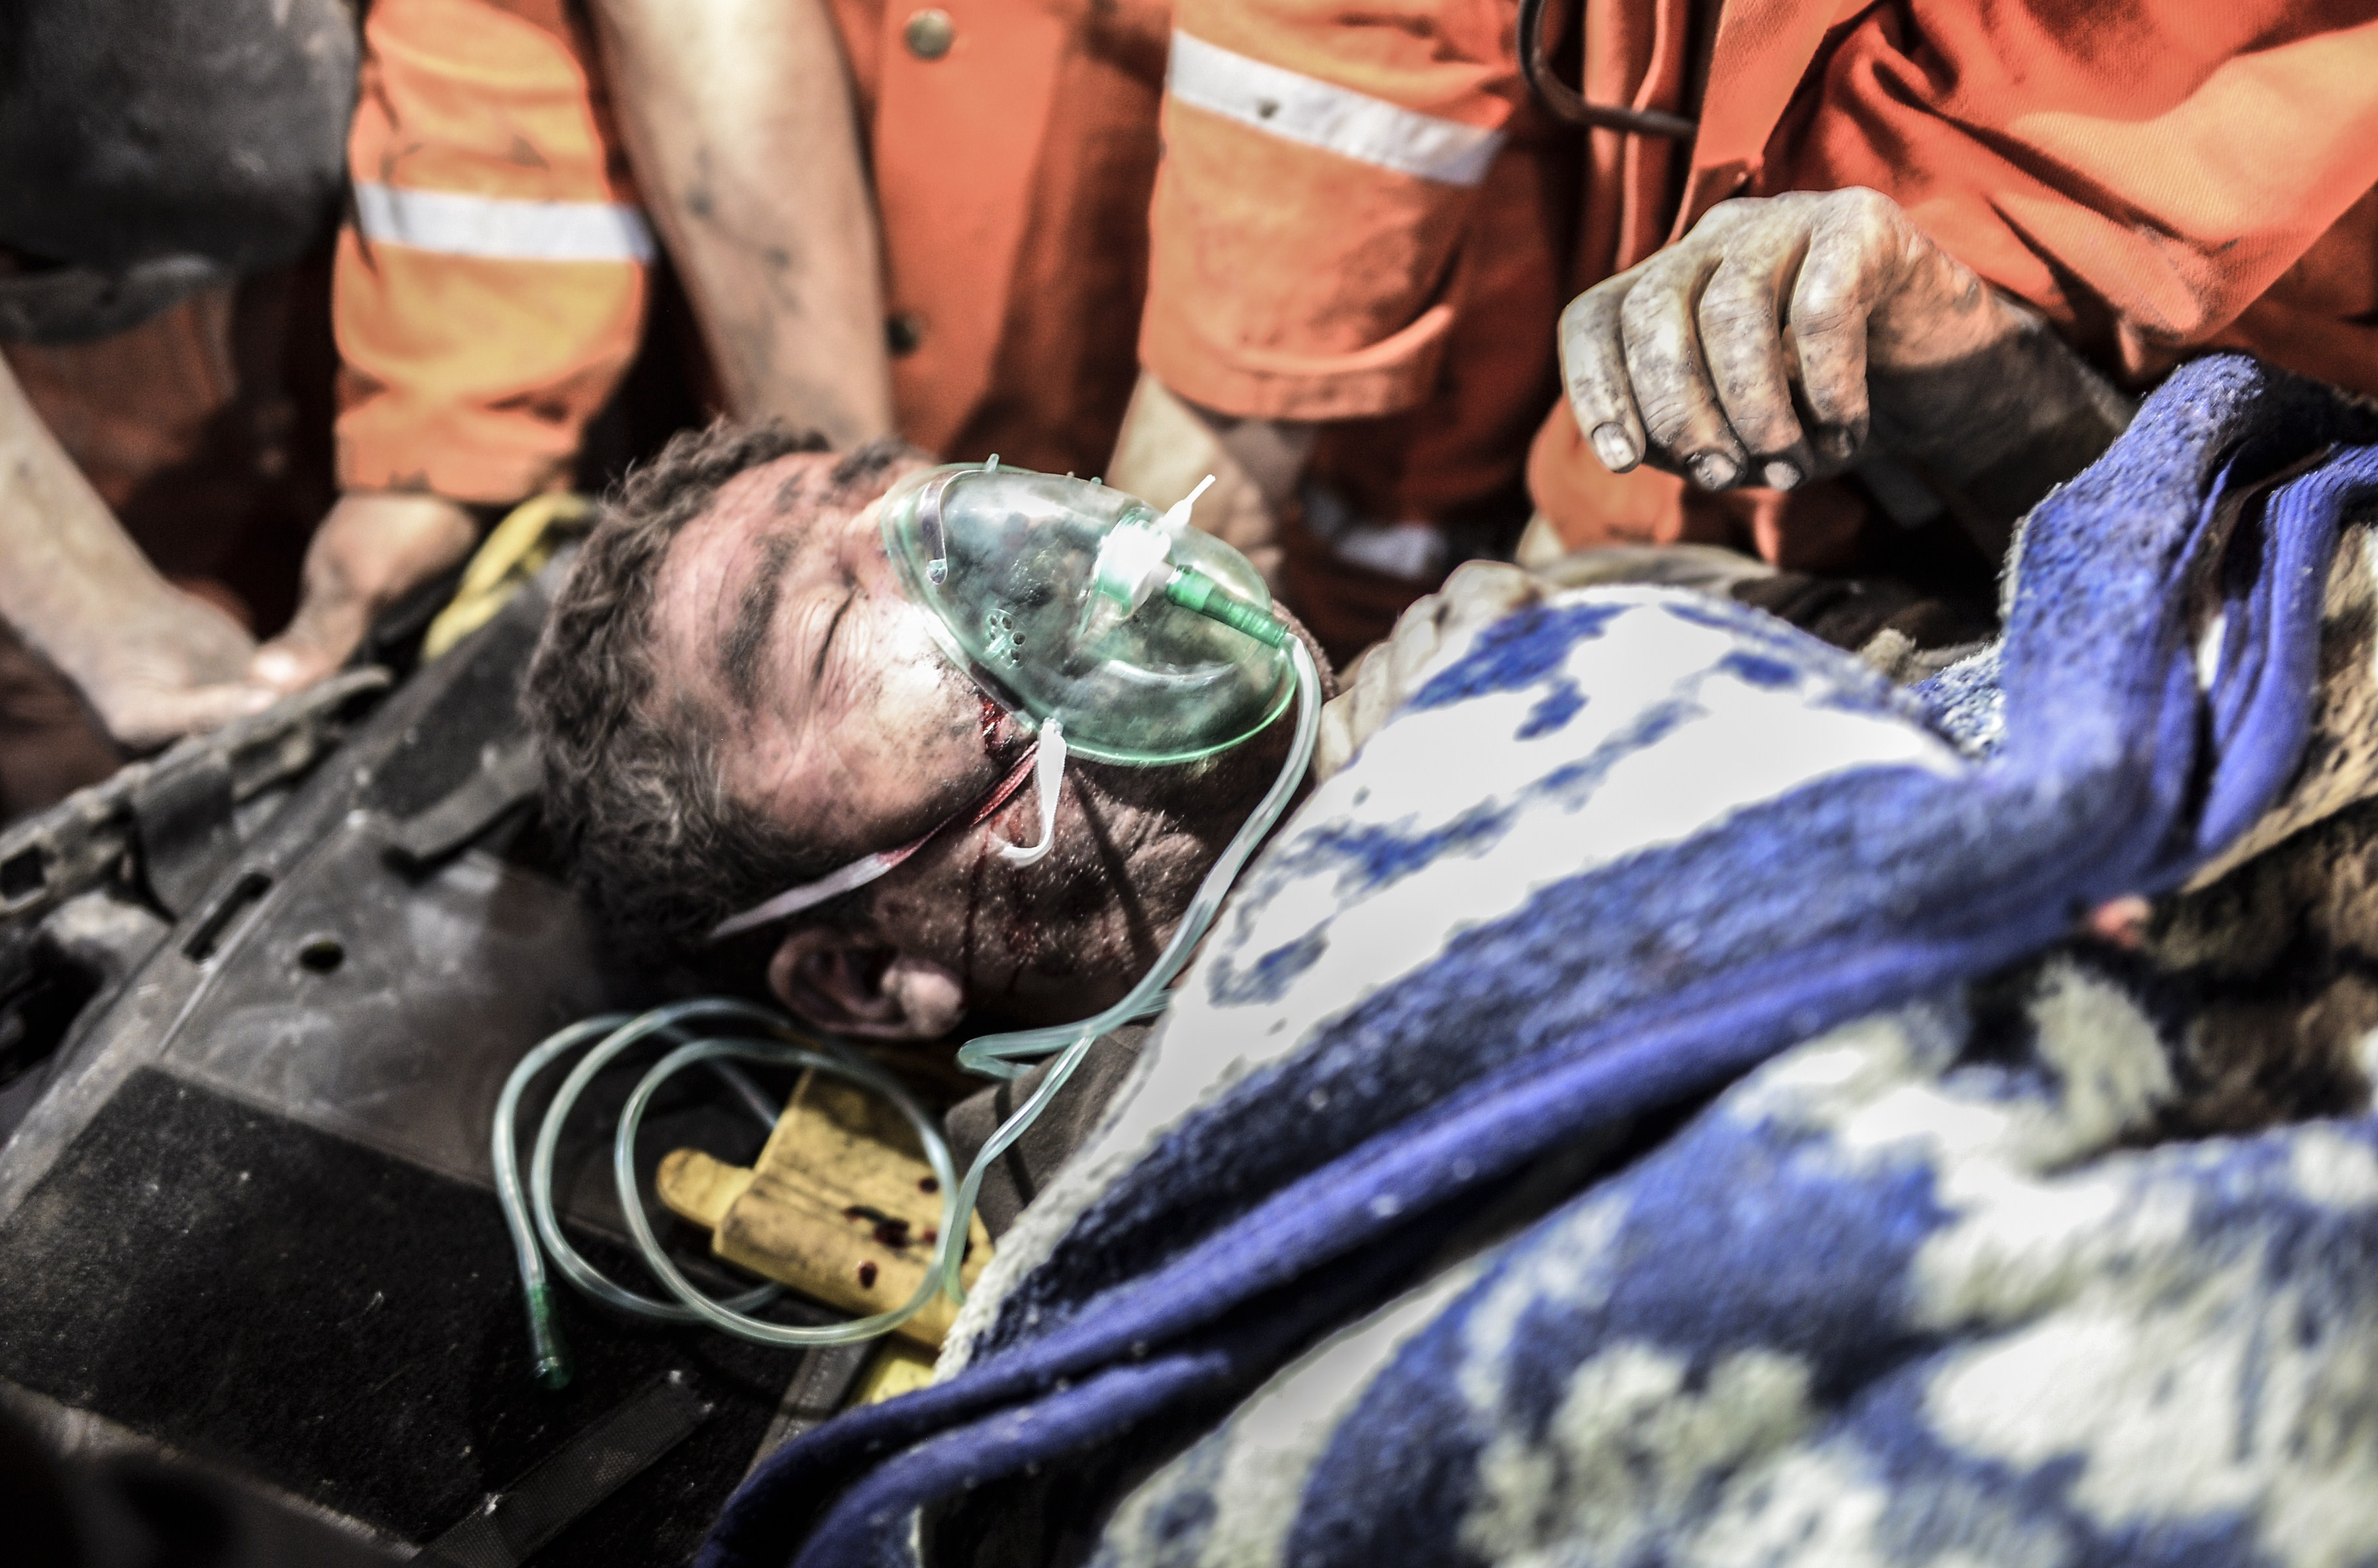 An injured or death miner is carried by rescuers after an explosion in Manisa on May 13, 2014.